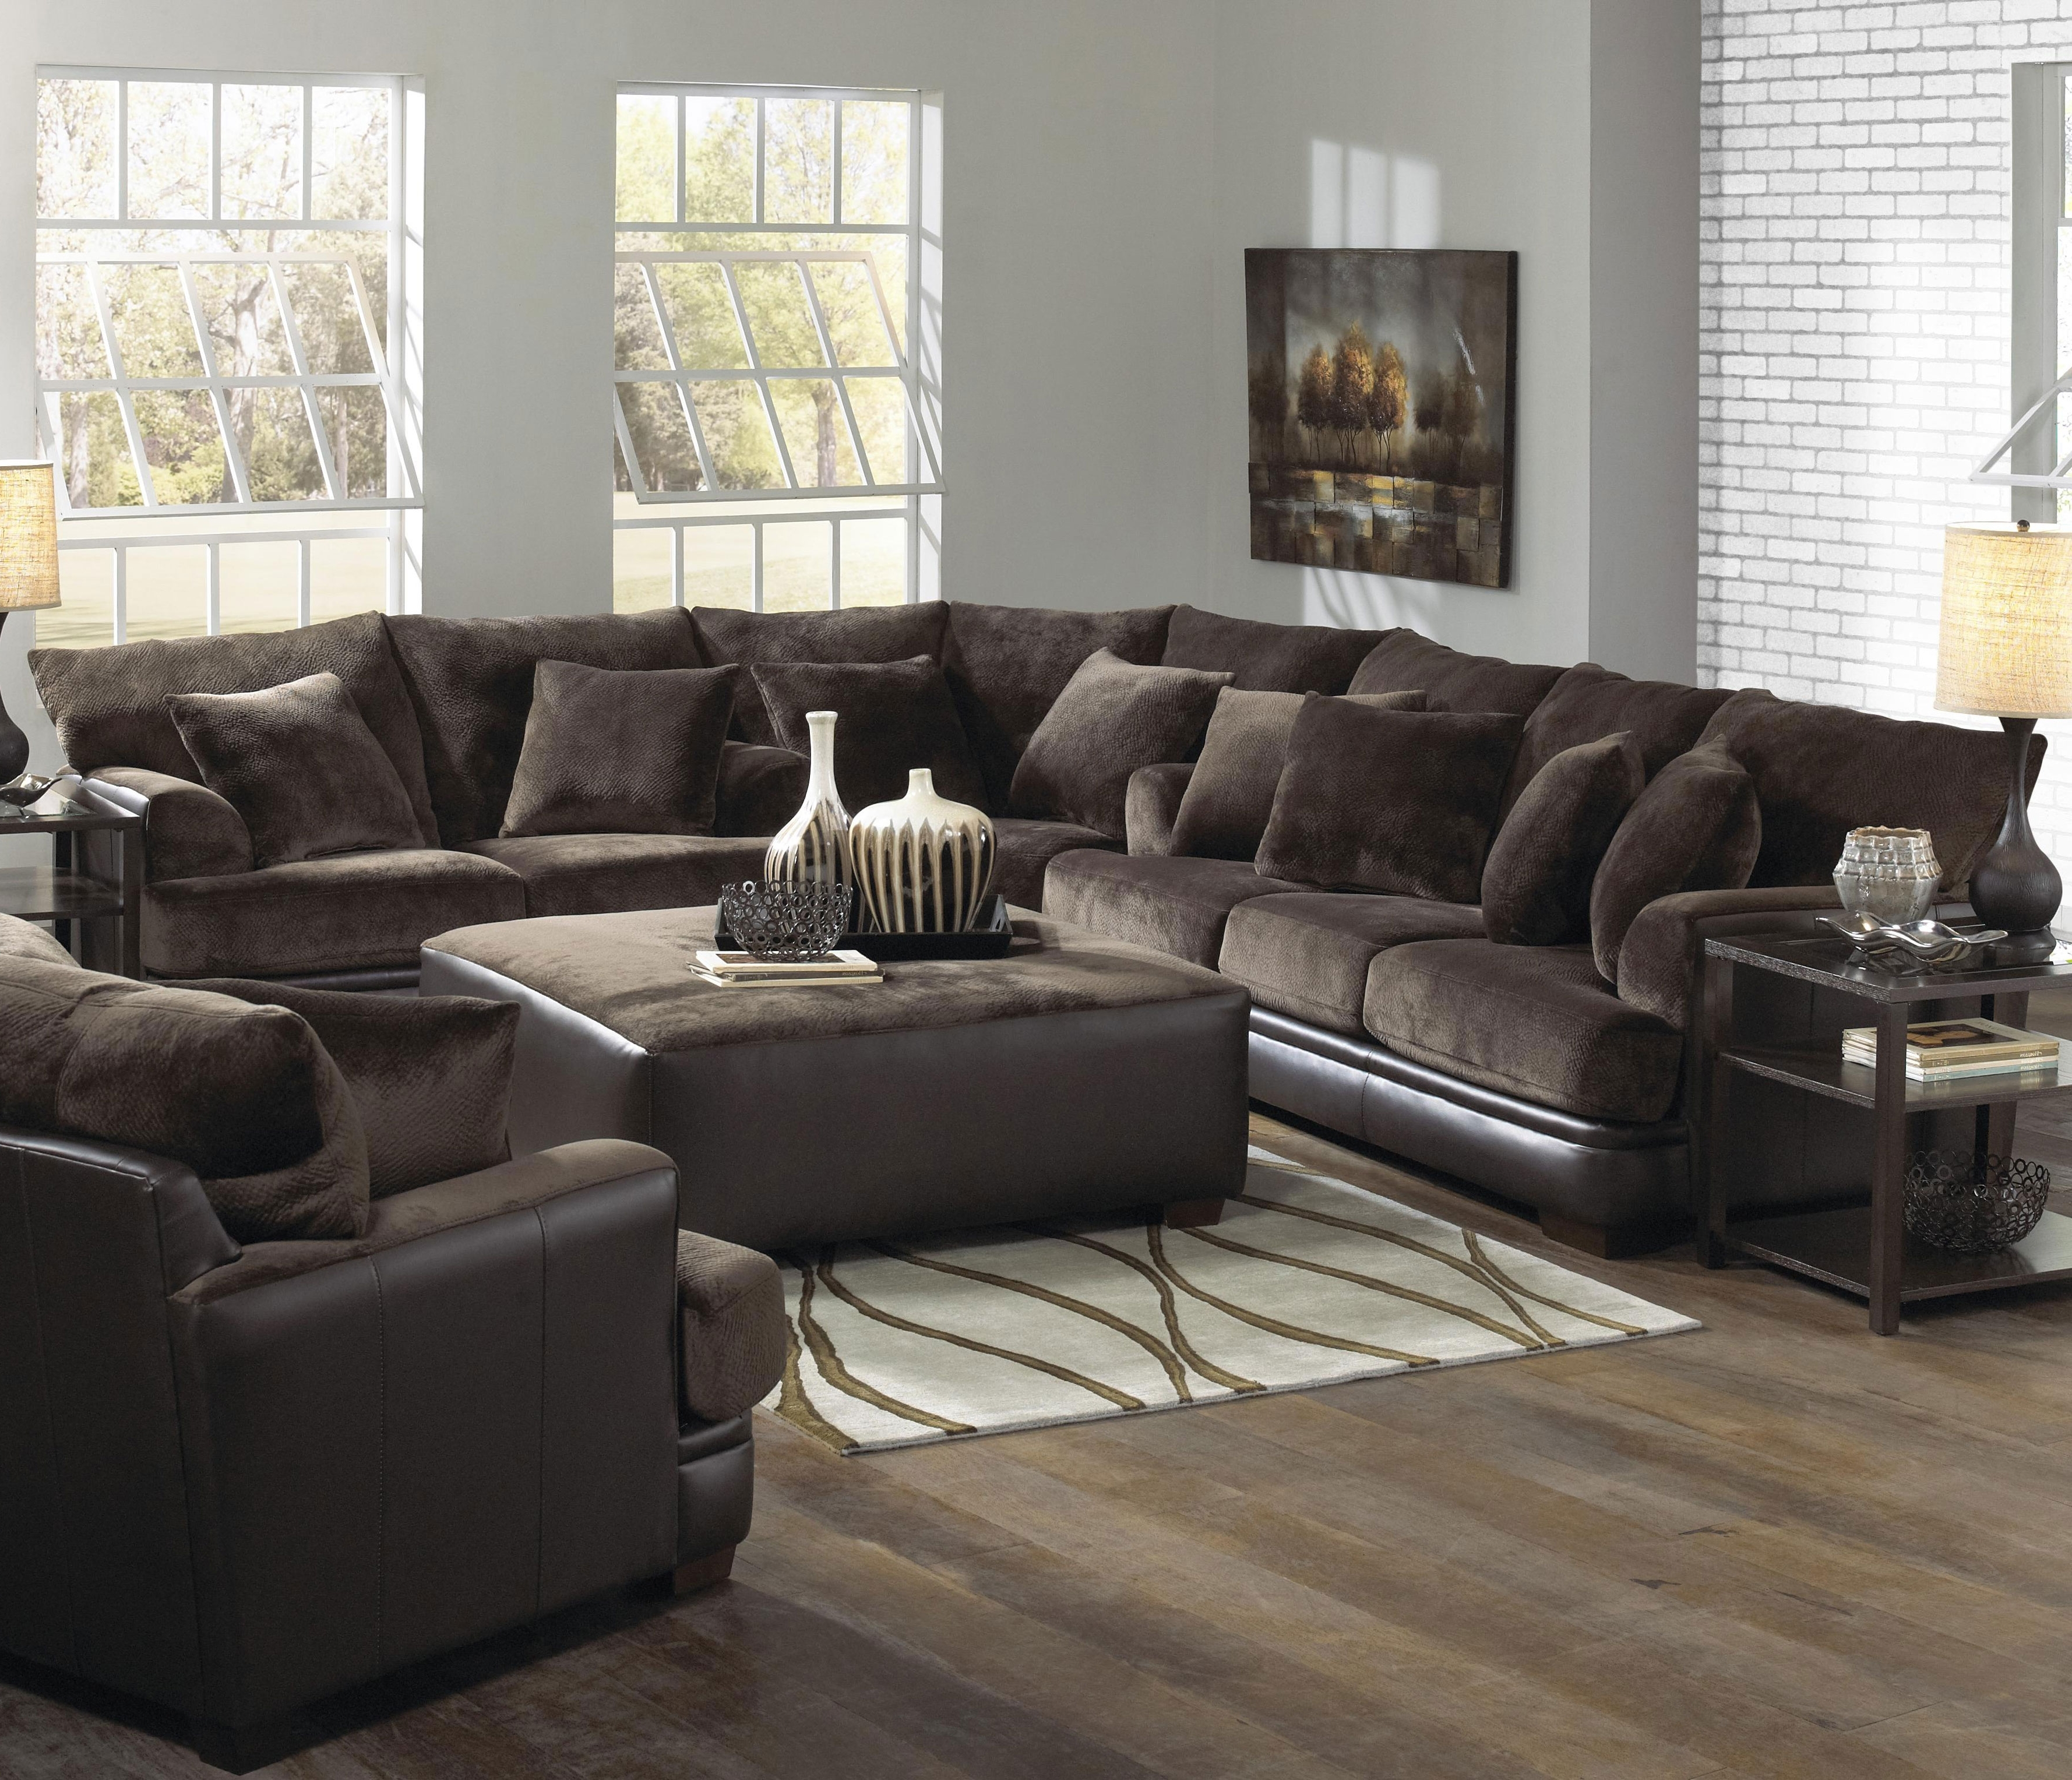 C Shaped Sofas Throughout Recent Sectional Sofa: The Best Design C Shaped Sofa Sectional C Shaped (View 8 of 20)